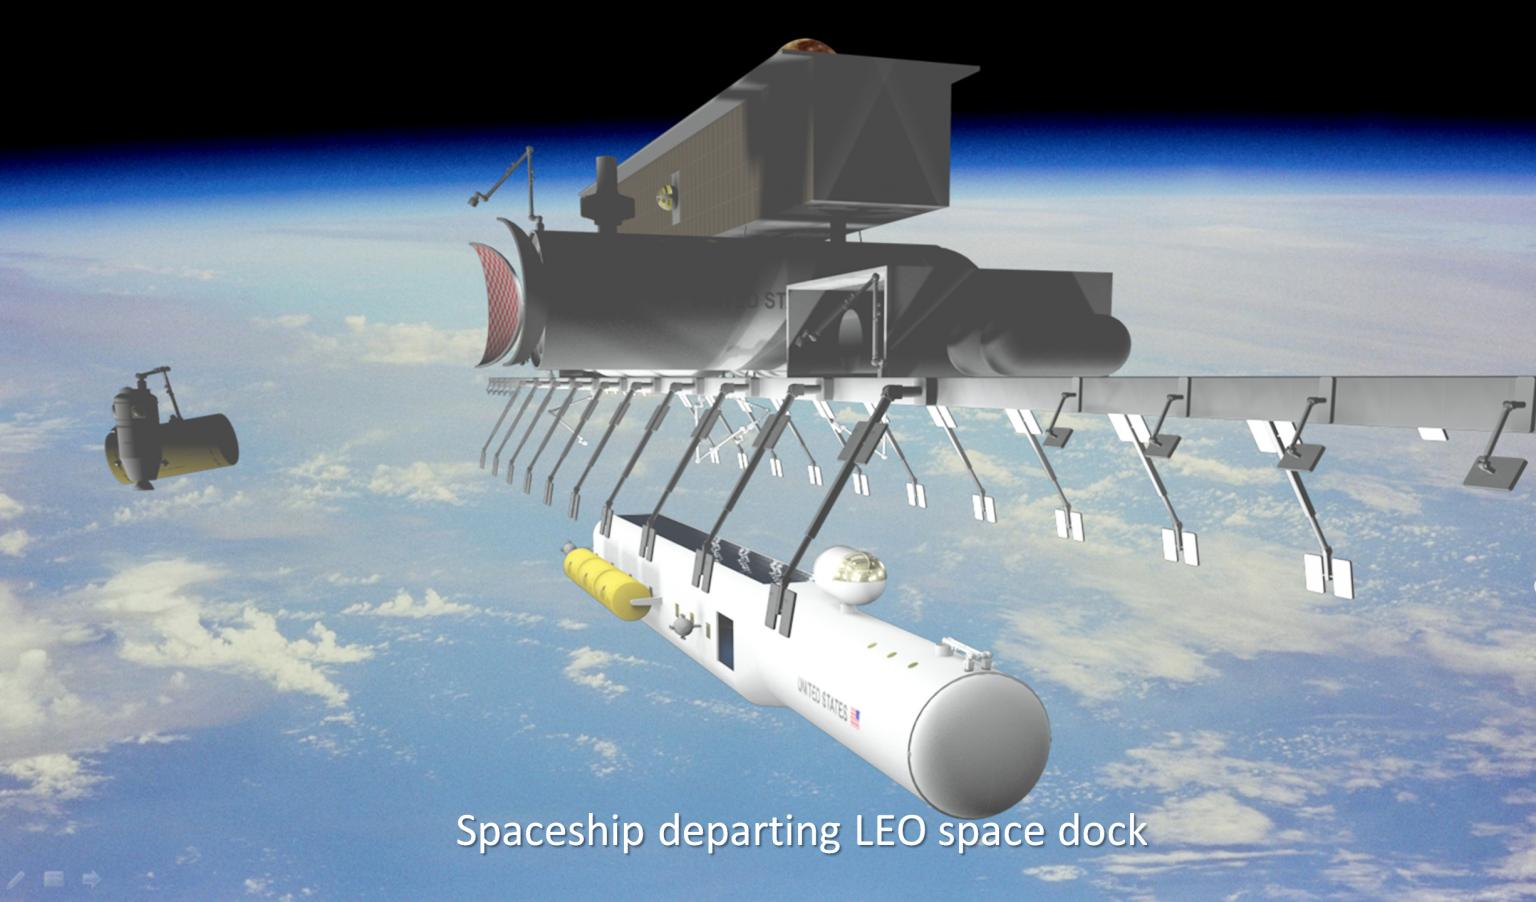 This image shows a large manned spaceship departing a space dock attached to an orbiting space logistics base. Both the crewed portion of the spaceship (the cylindrical portion) and the space hangars (with doors open) and habitat of the space base will require micrometeoroid protection. These structures are about 10 metres in diameter. Image credit: Spacefaring Institute